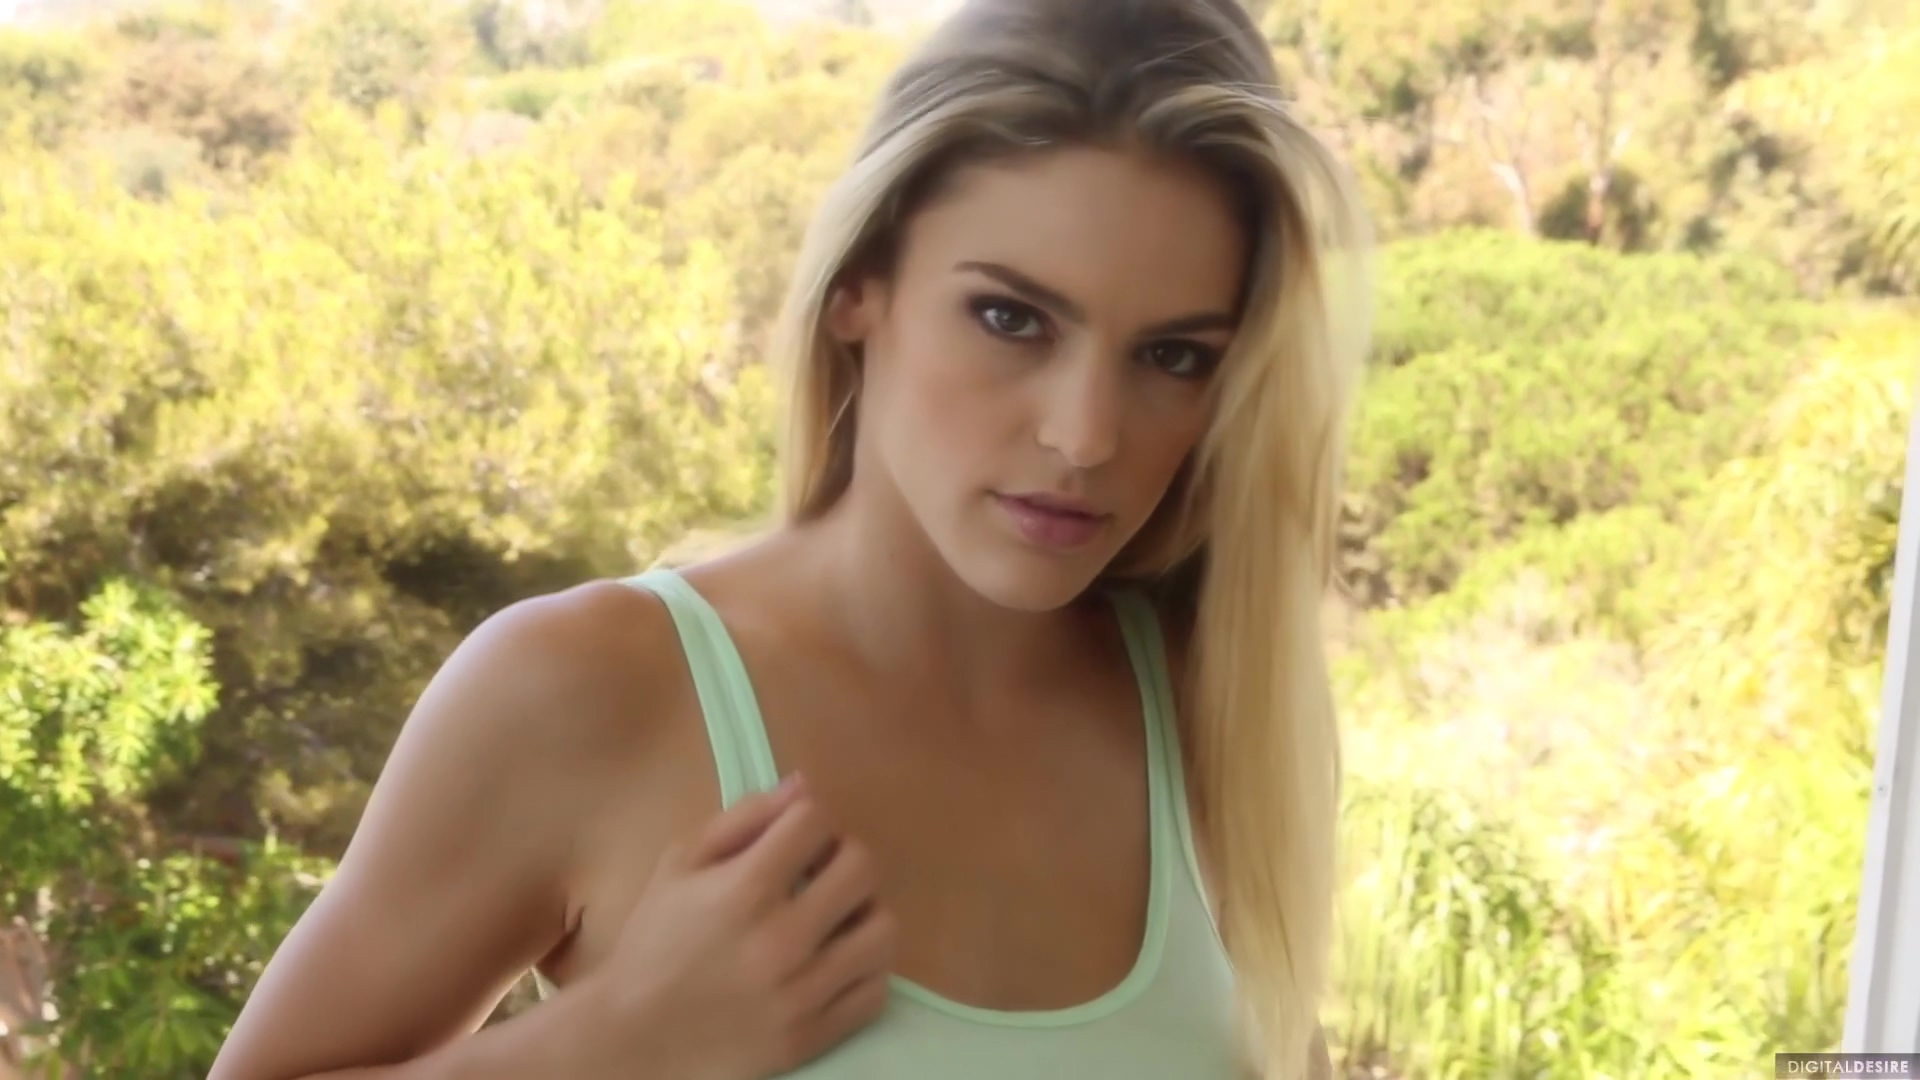 Video 1338973904: hairy solo, babe fingering, hairy french, couch fingering, hairy female, blonde solo hd